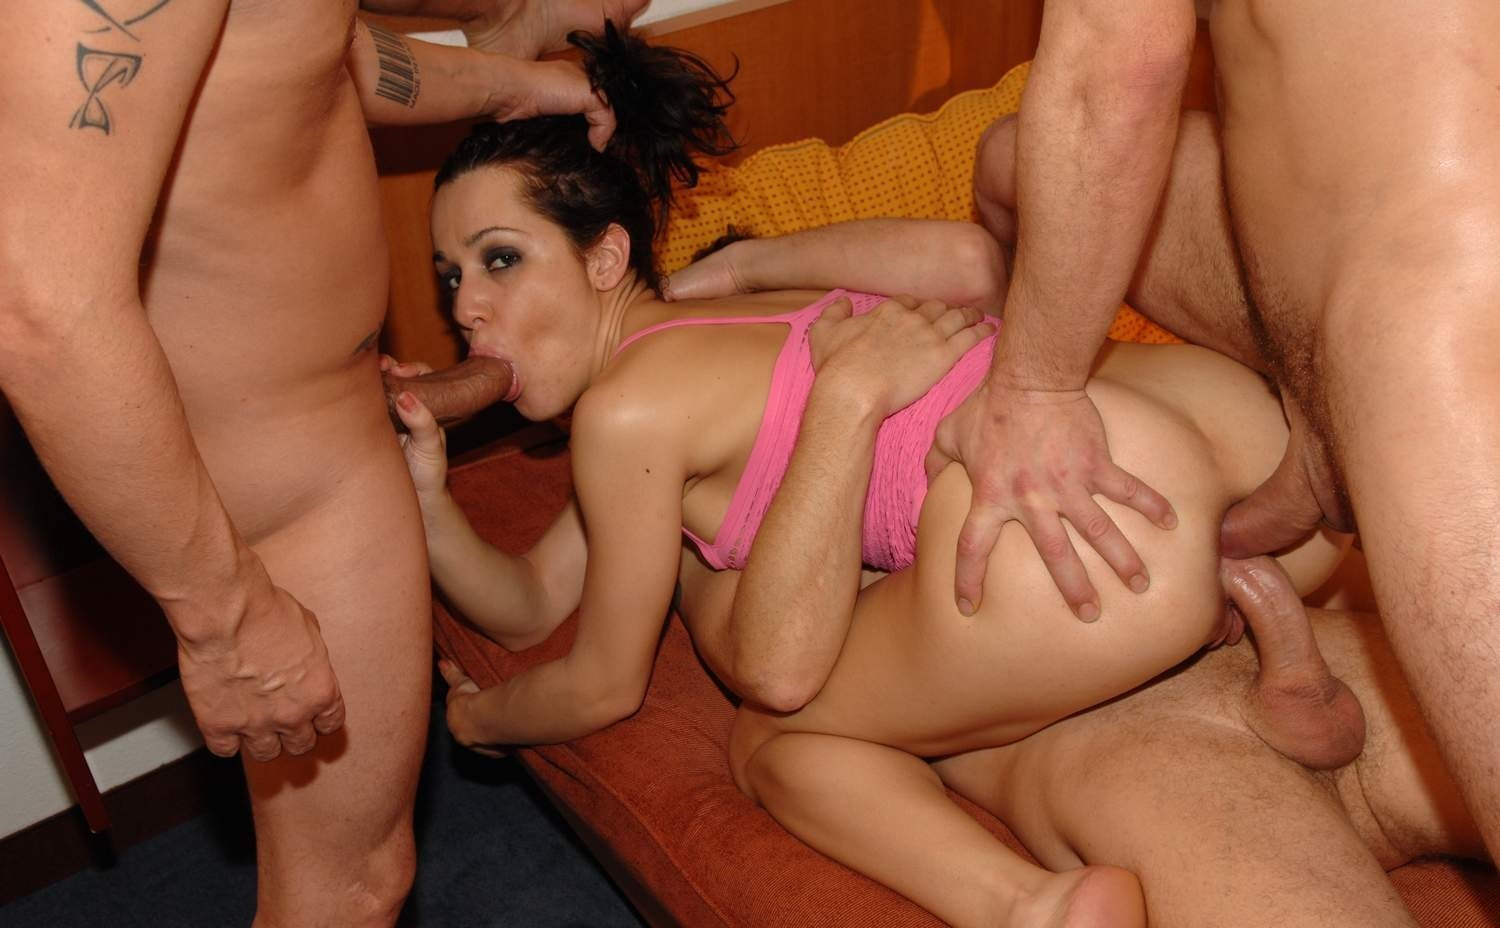 Girl rides reverse cowgirl